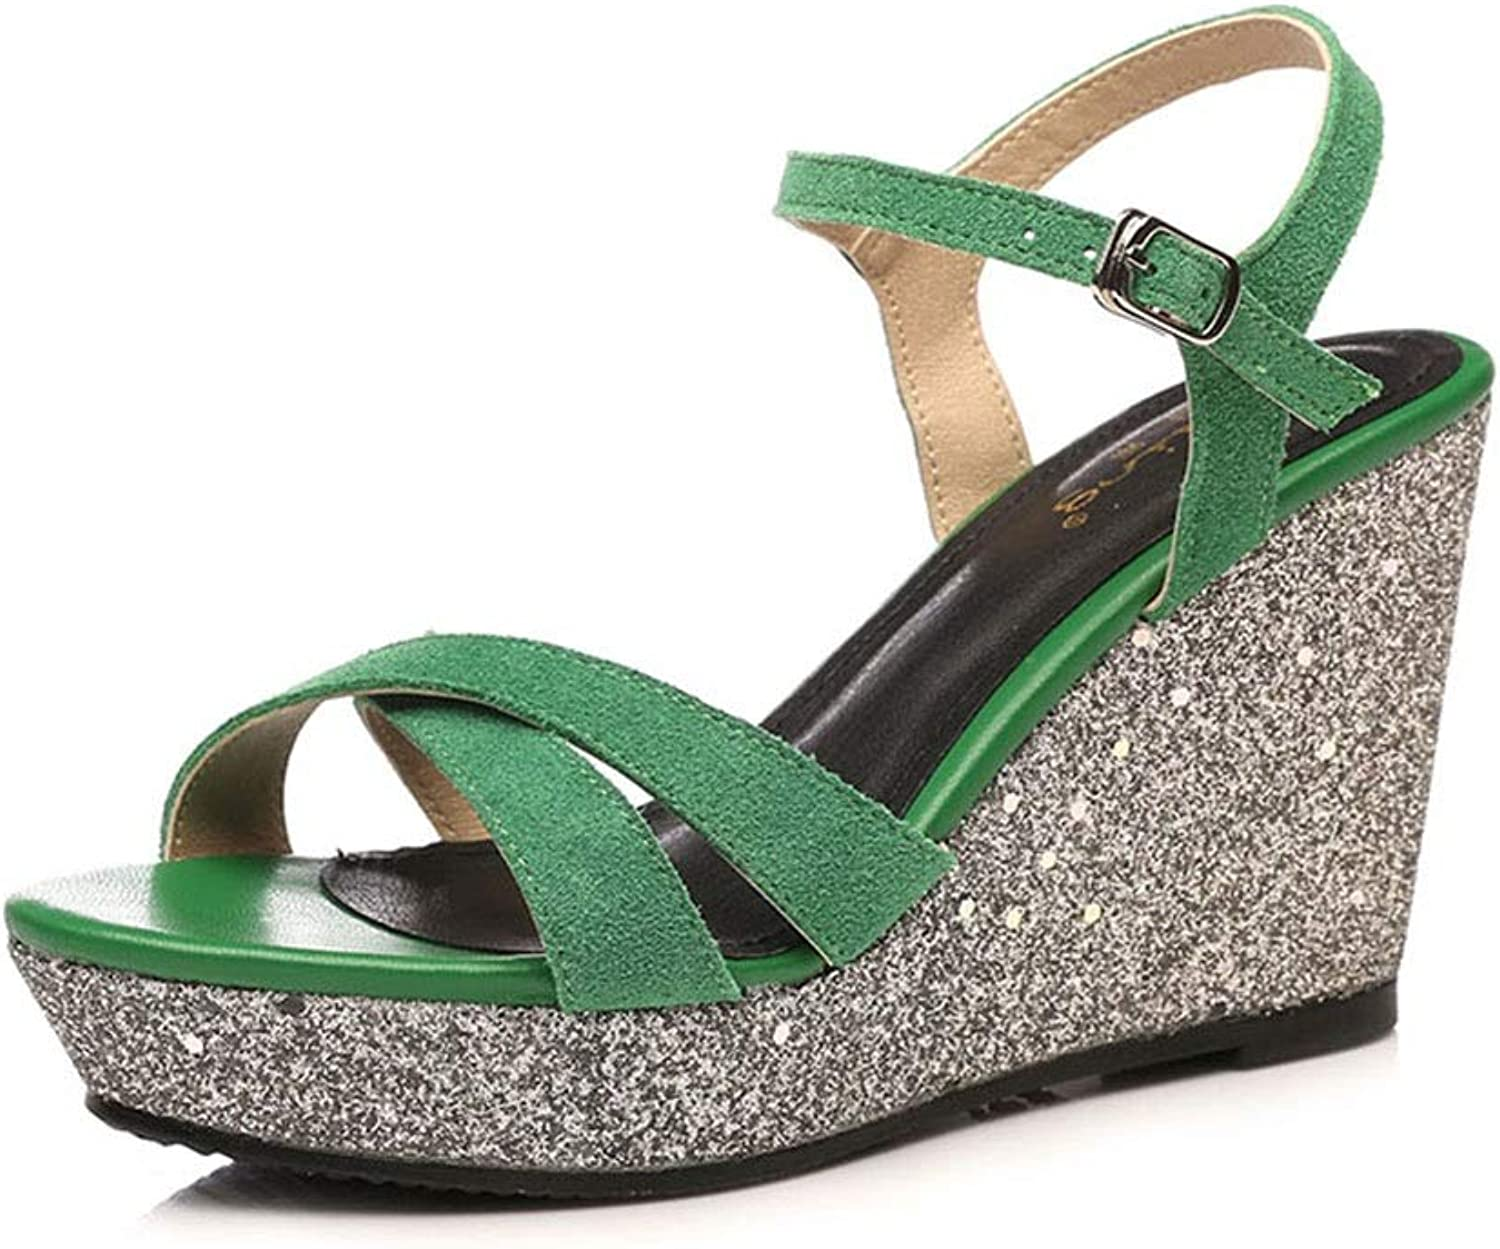 Sandals Women's shoes Sandals Summer Wedges Sequins Women's Sandals Matte Leather Sexy Fashion Small Size Women's shoes, Heel Height 9 cm (color   Green, Size   38)